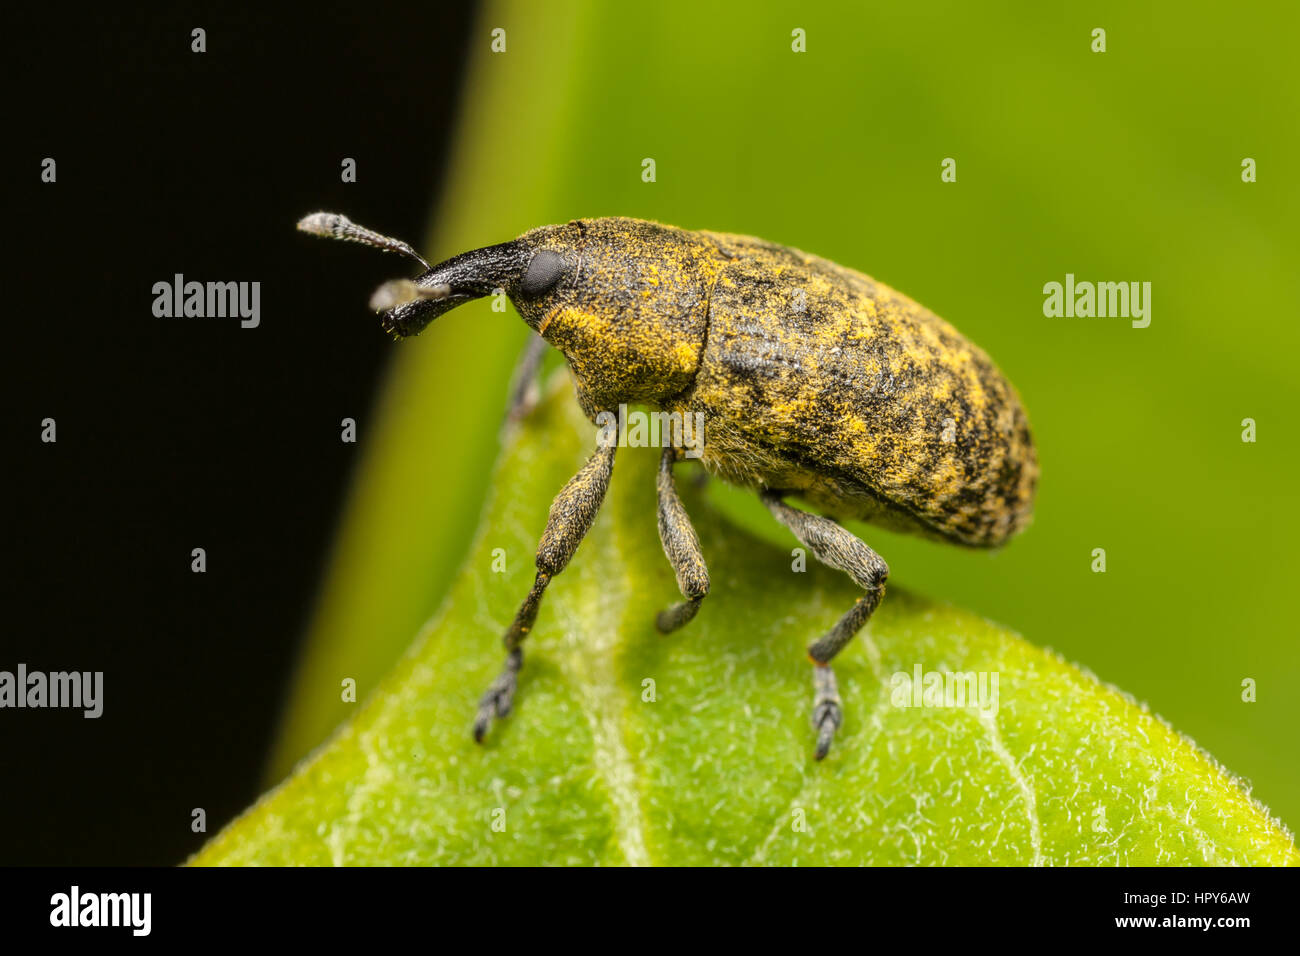 A Canada Thistle Bud Weevil (Larinus planus) at the edge of a leaf. - Stock Image